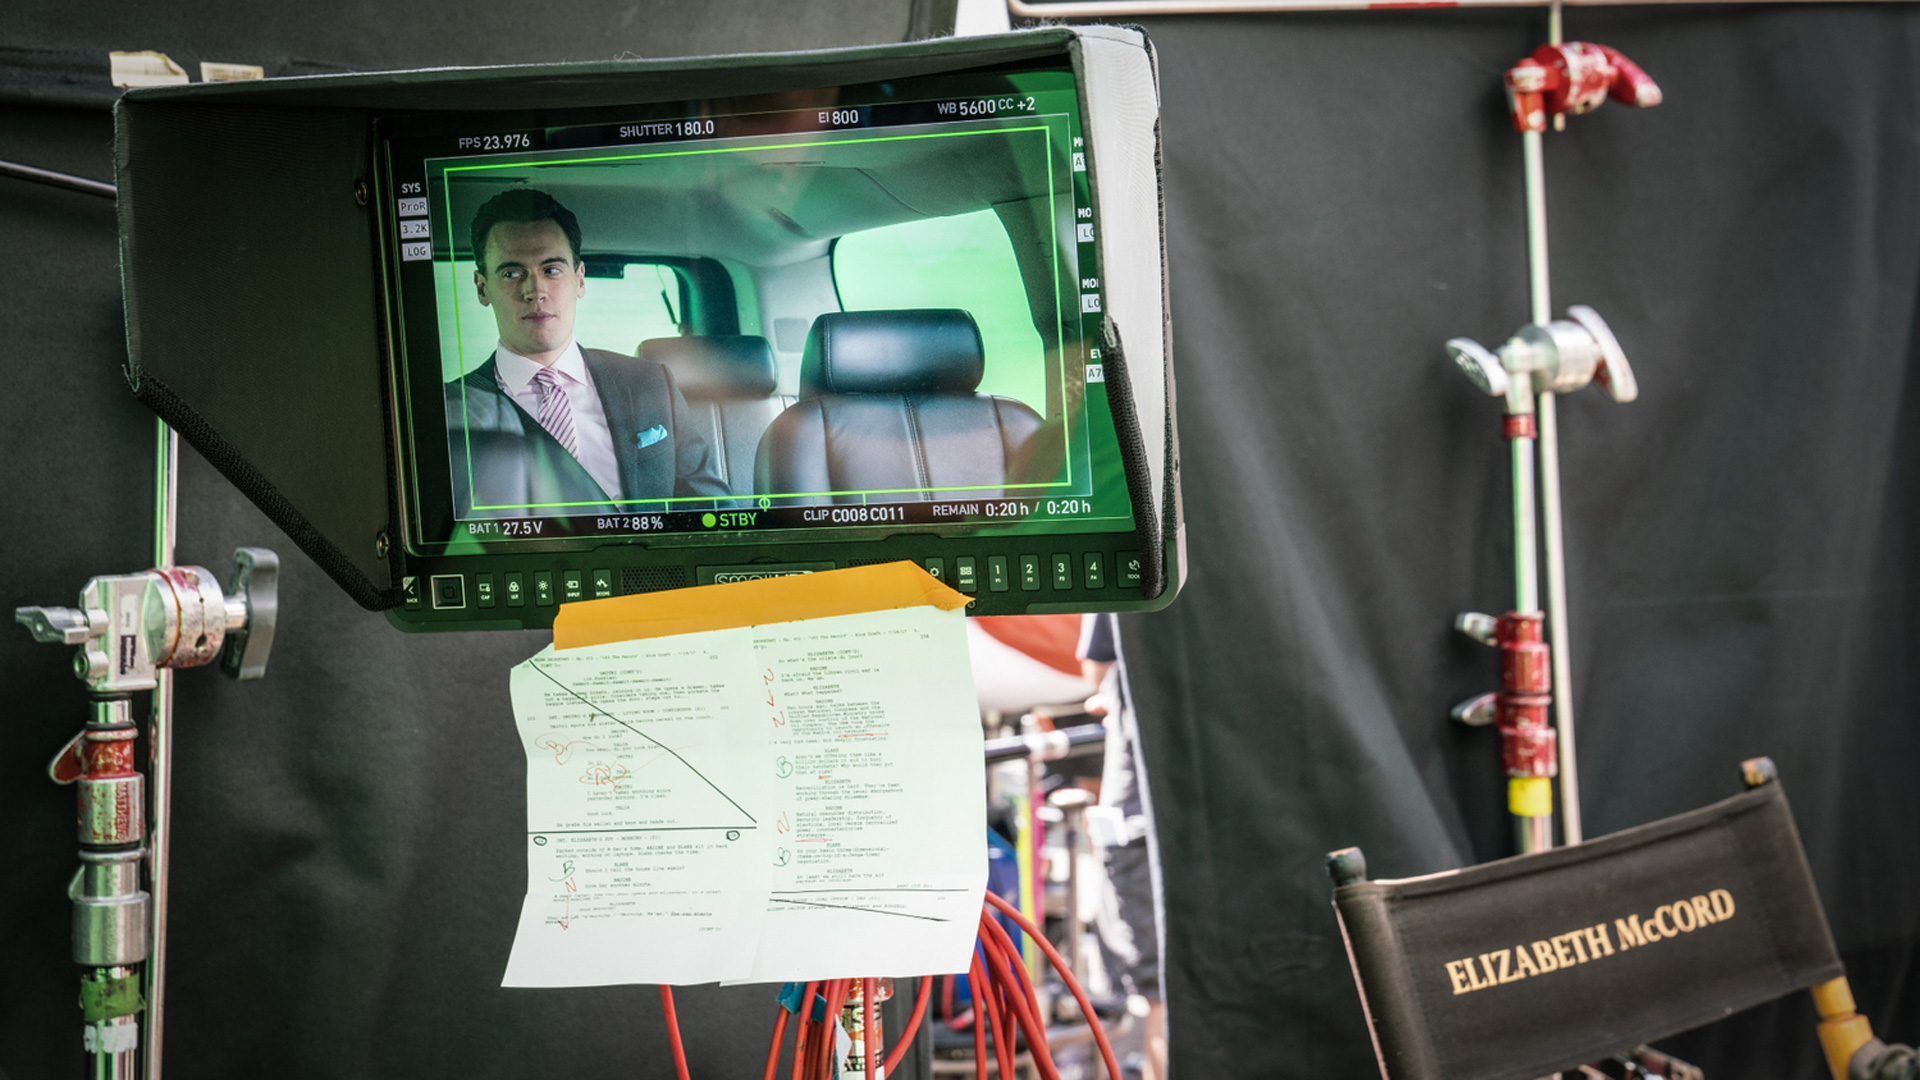 Erich Bergen is Blake Morgan in this on-camera shot.